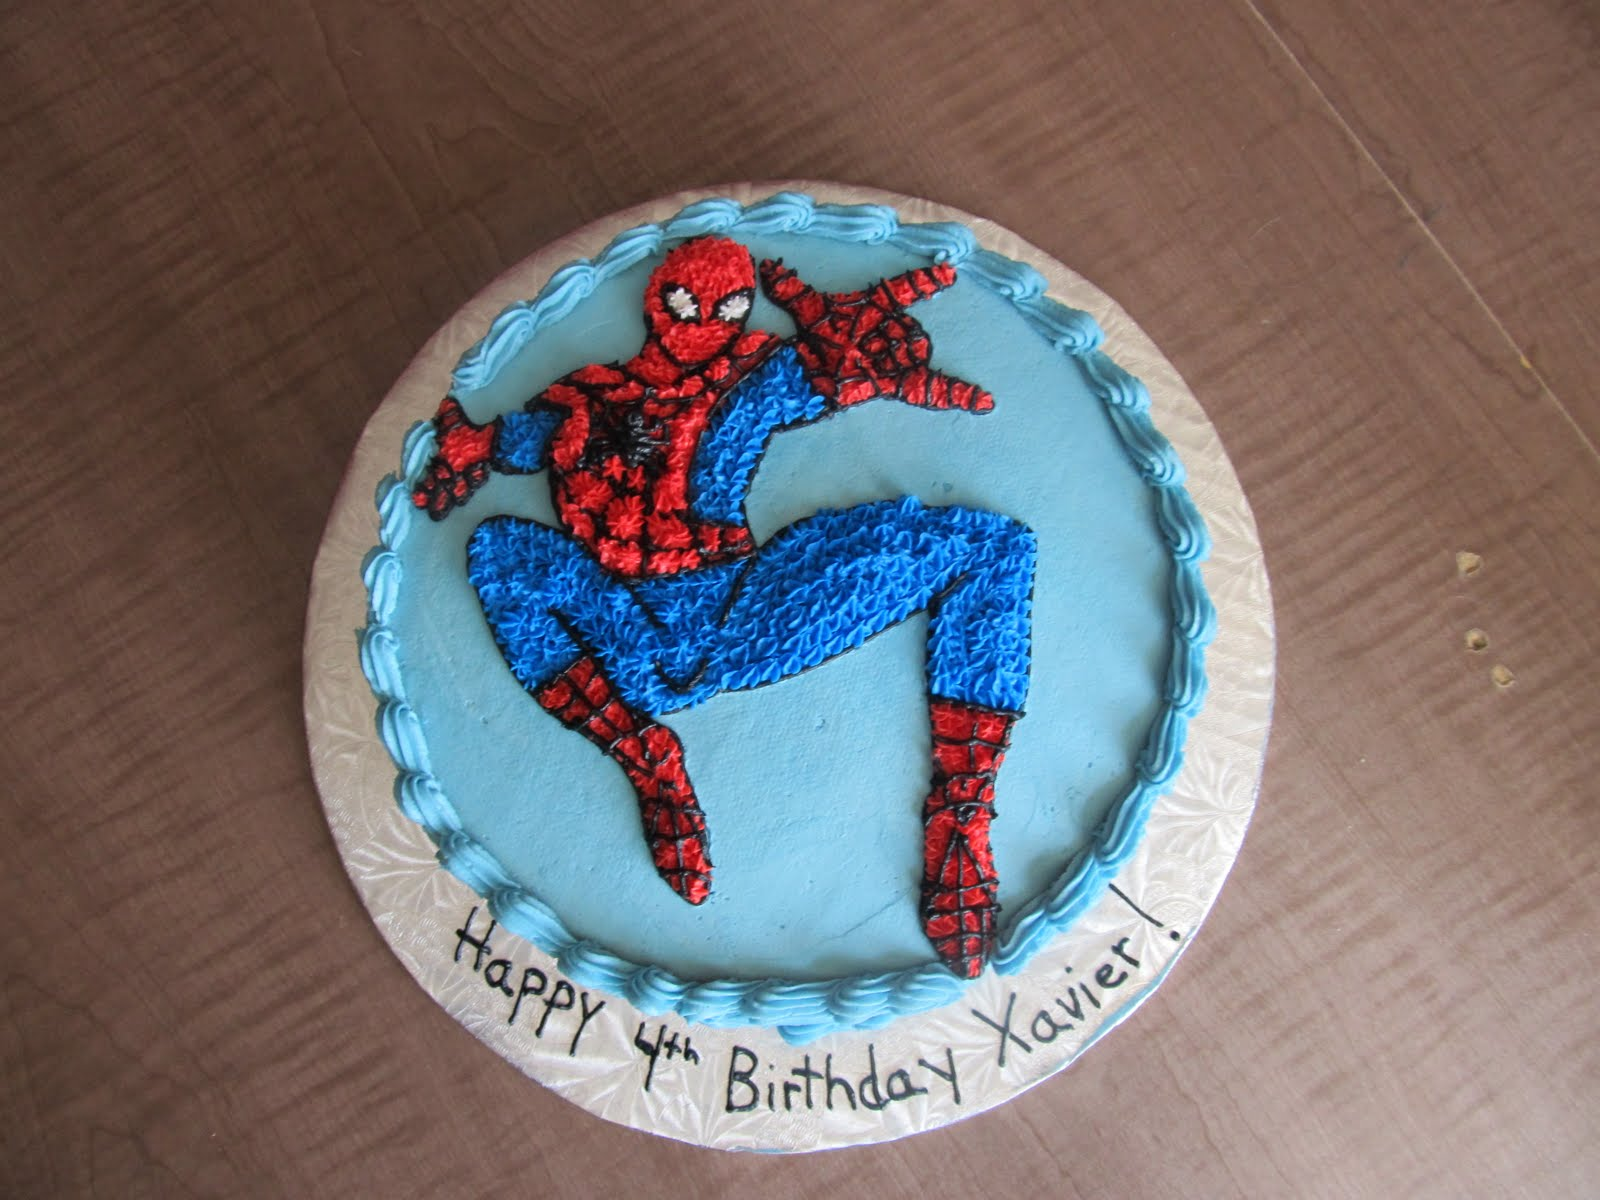 Cake Designs by Steph: Spiderman cake!